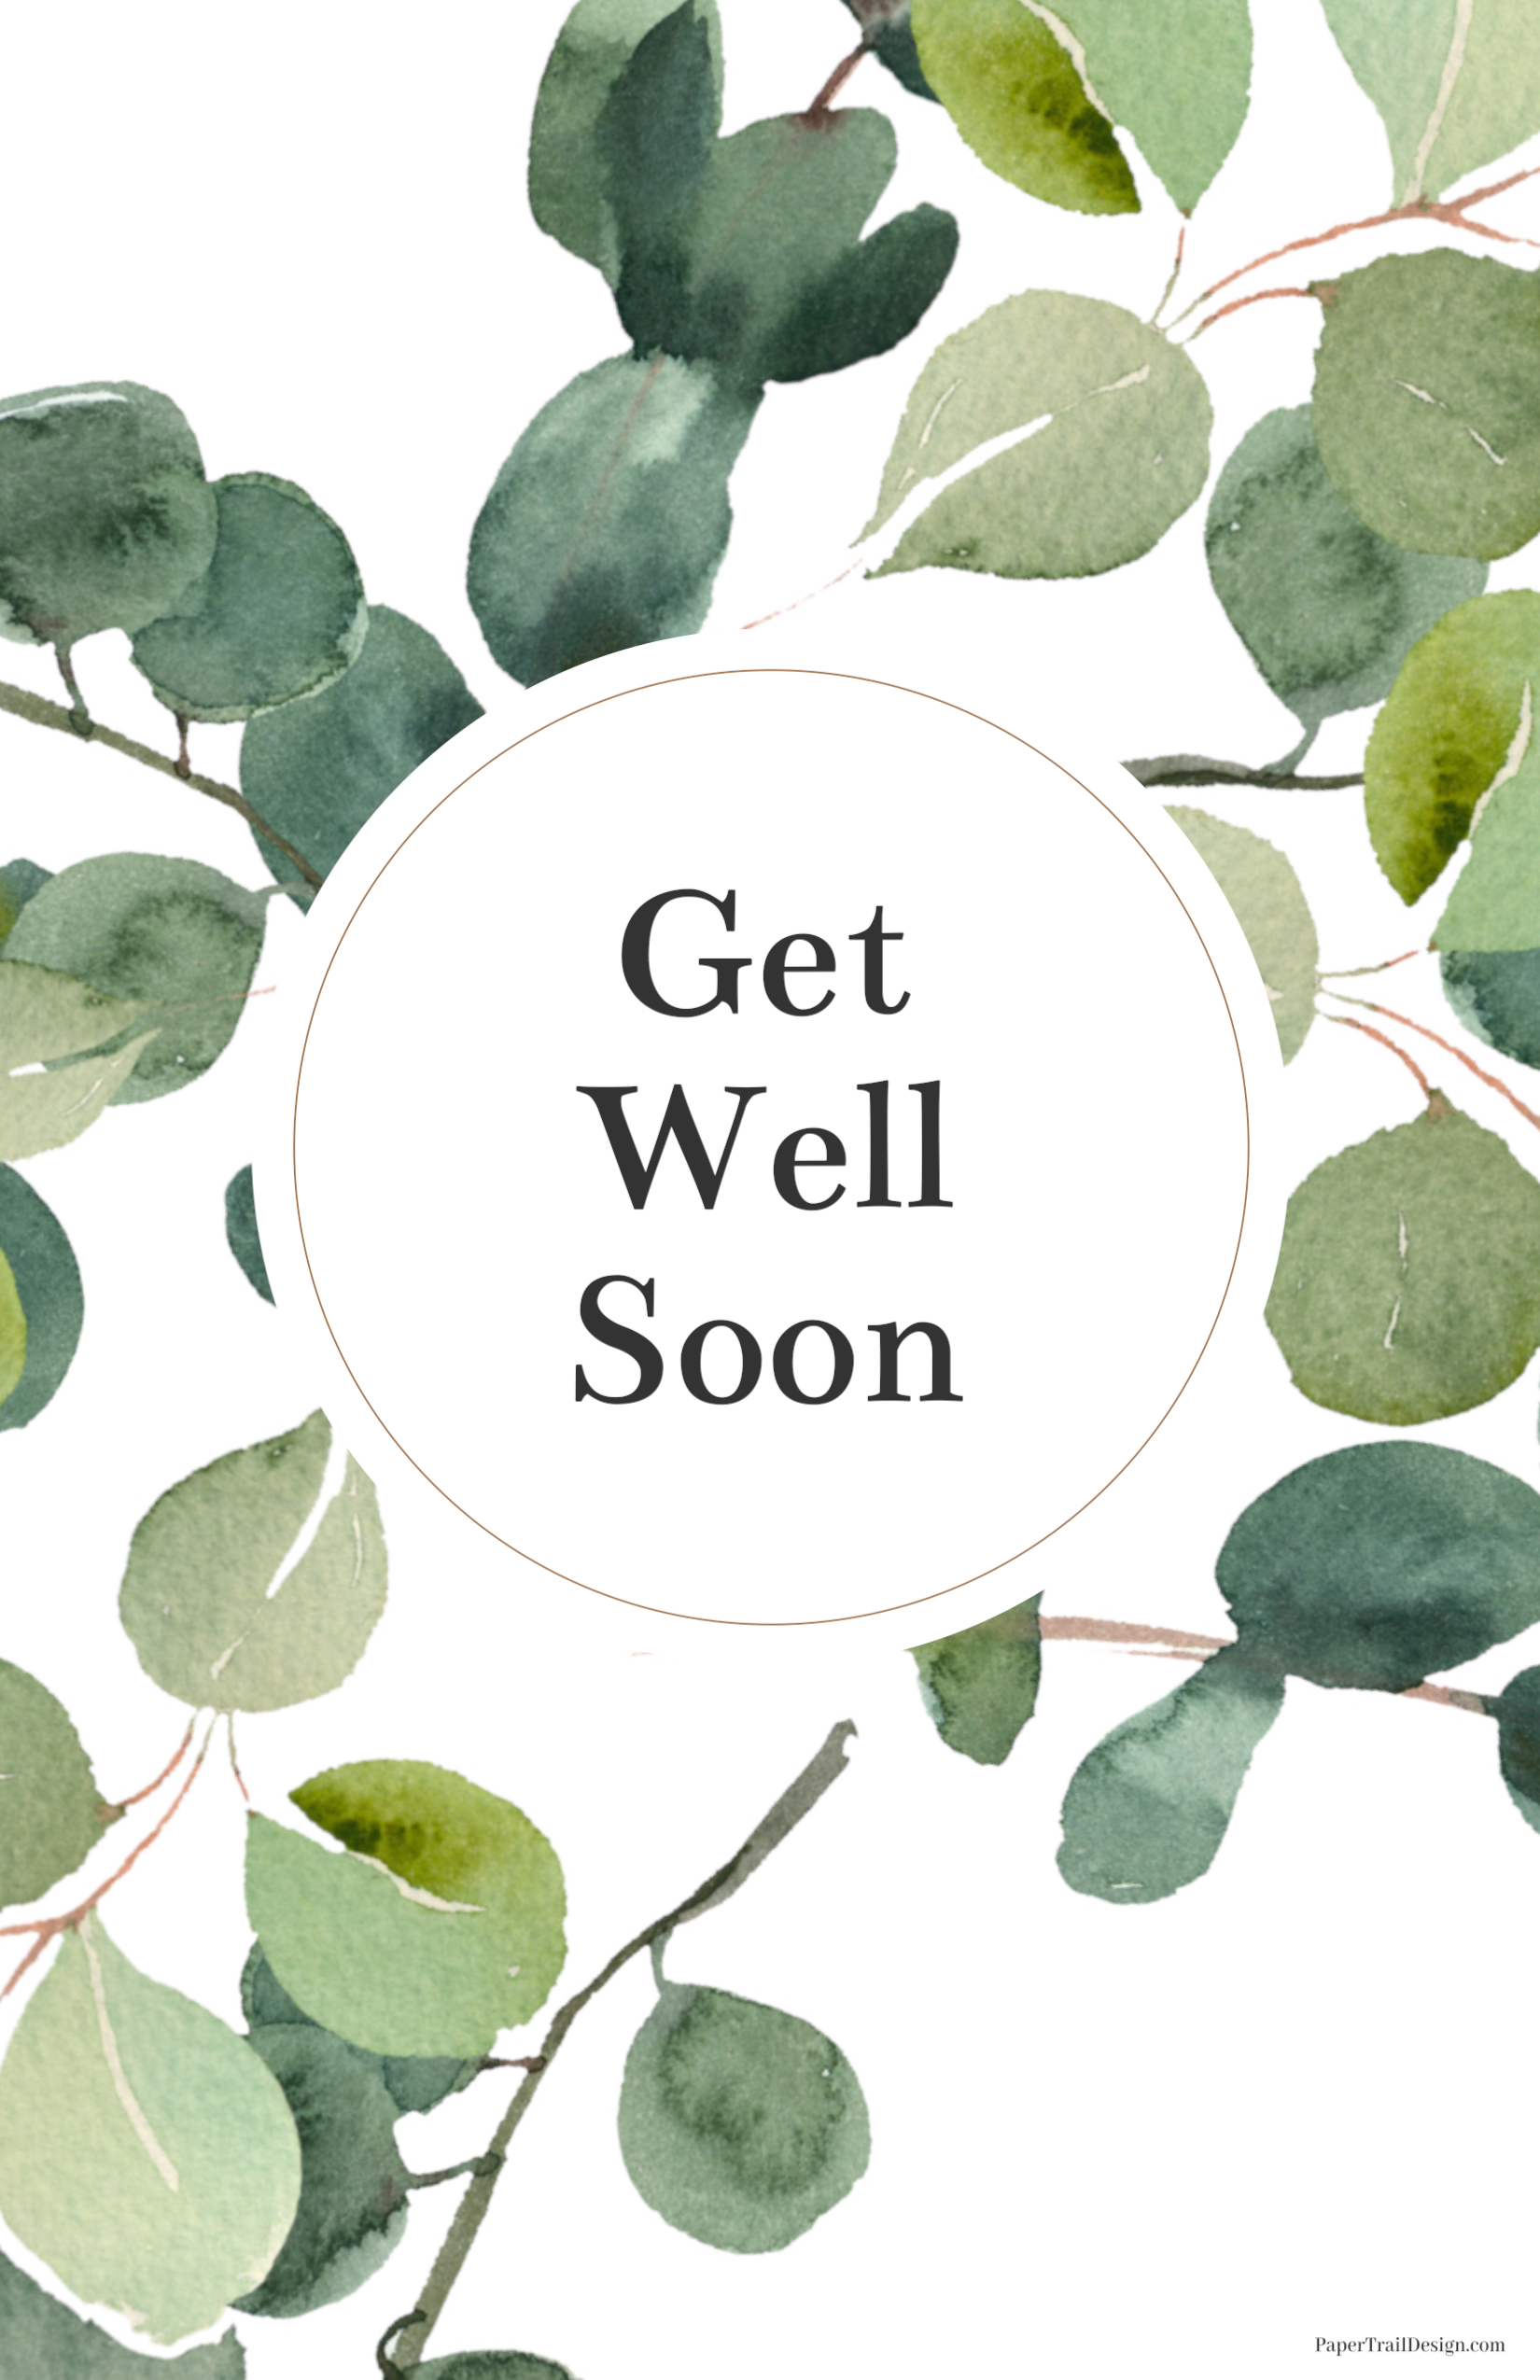 Get Well Soon Cards Printable  Paper Trail Design Regarding Get Well Soon Card Template